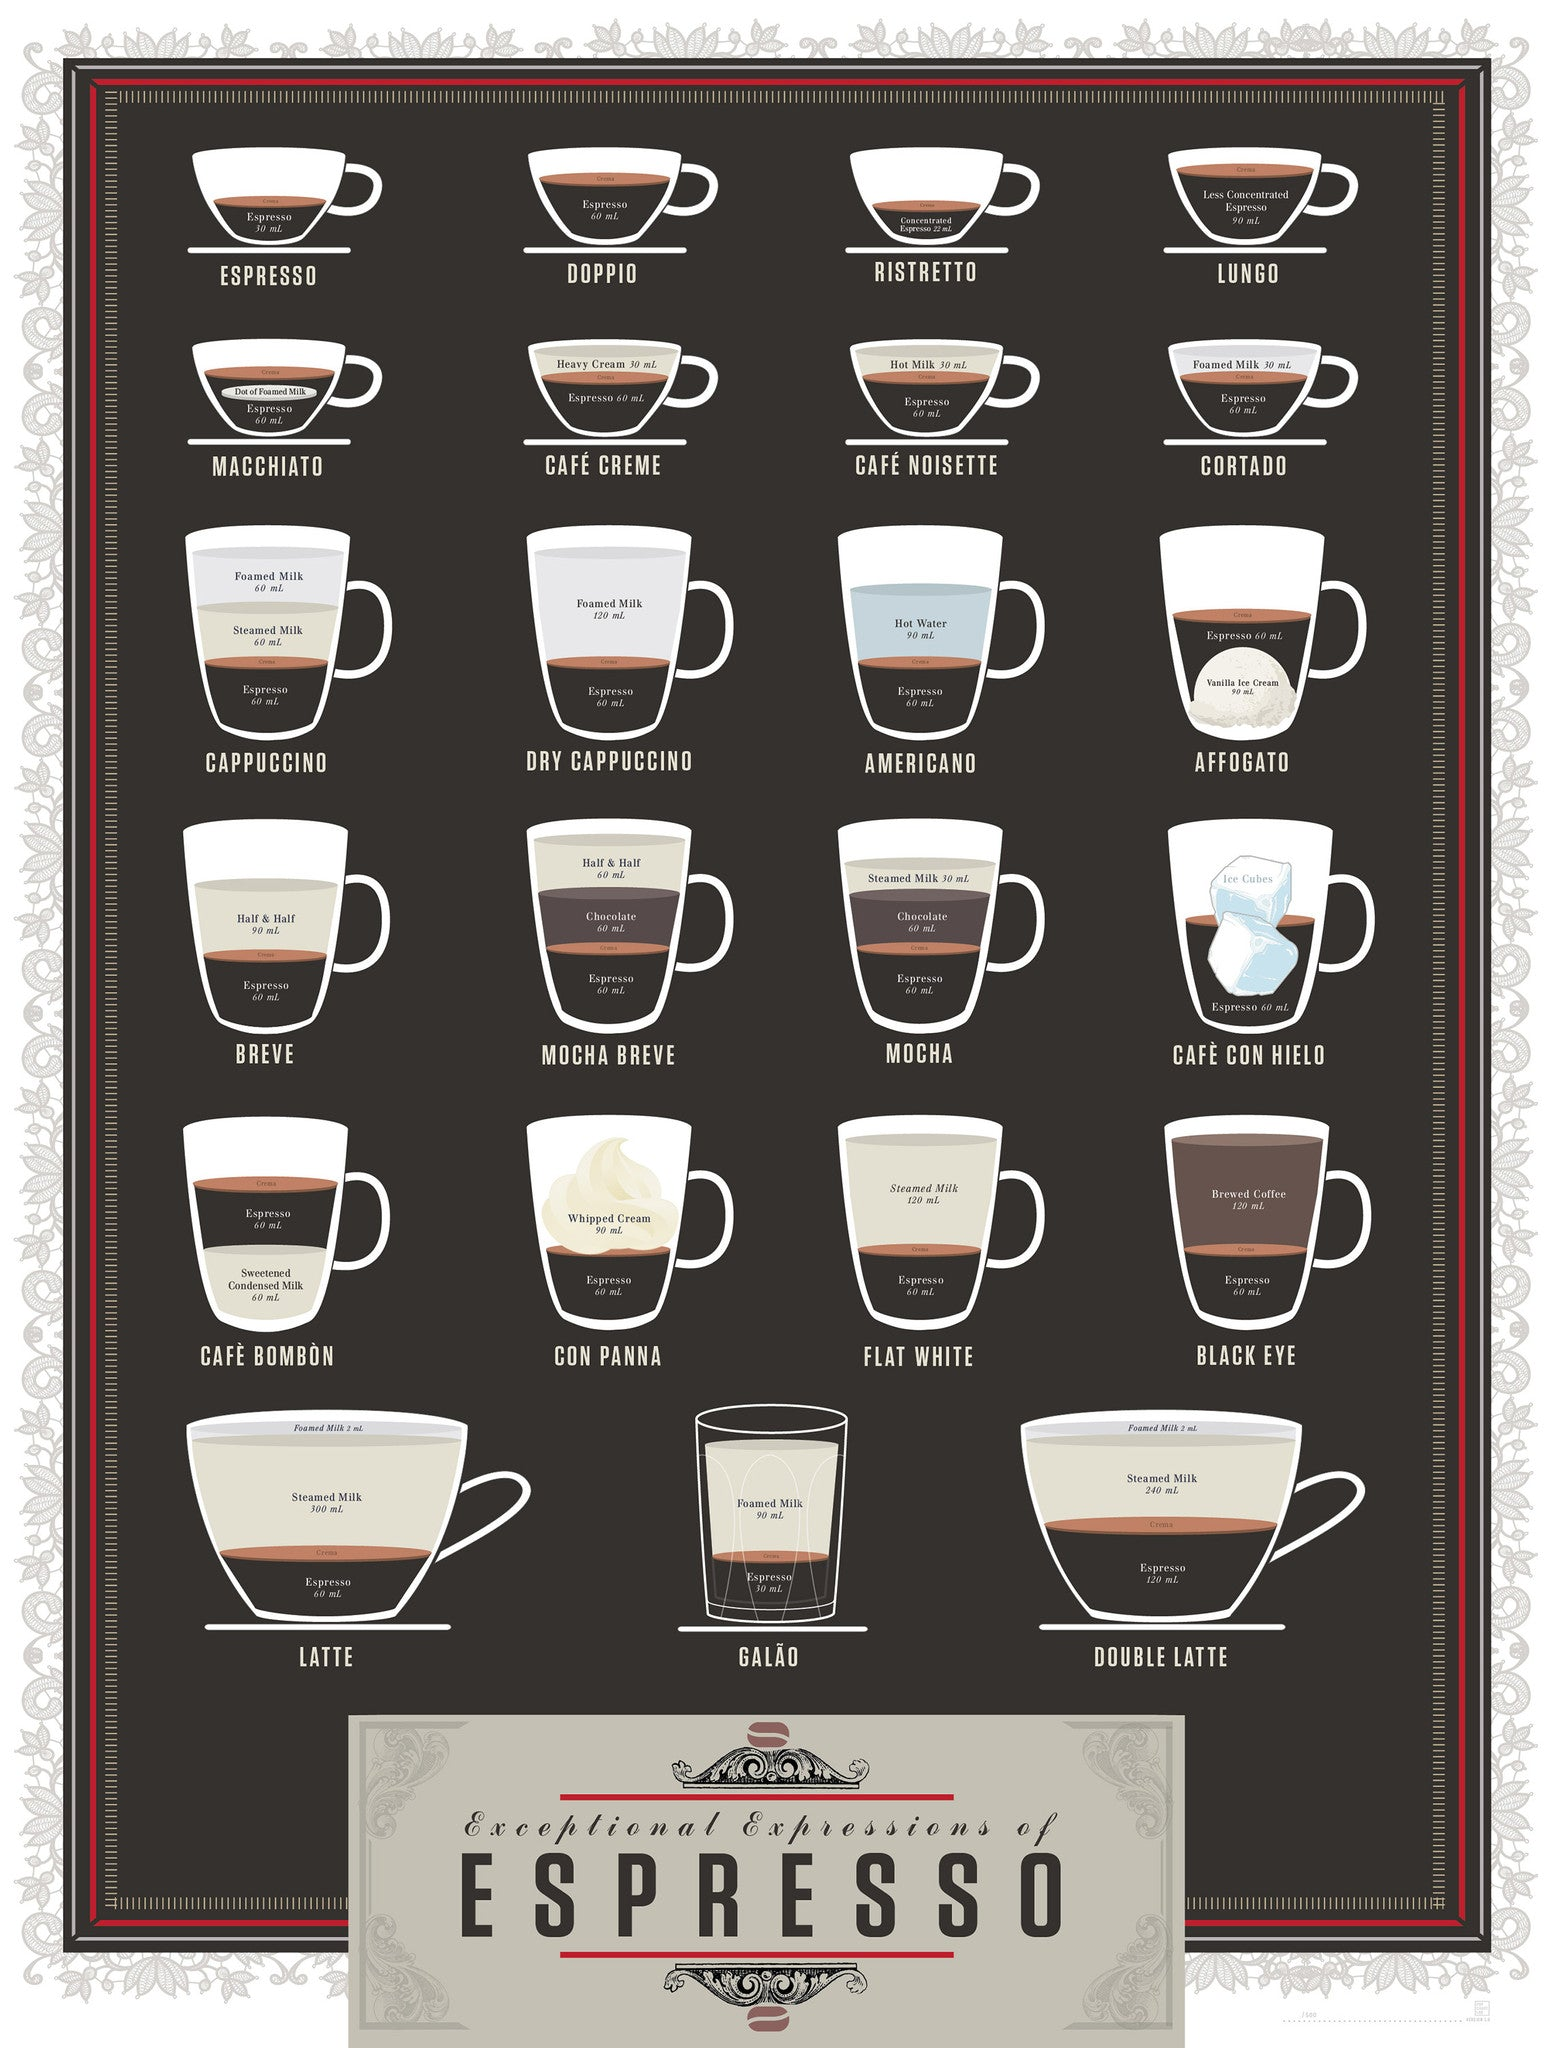 Exceptional Expressions Of Espresso Pop Chart Lab